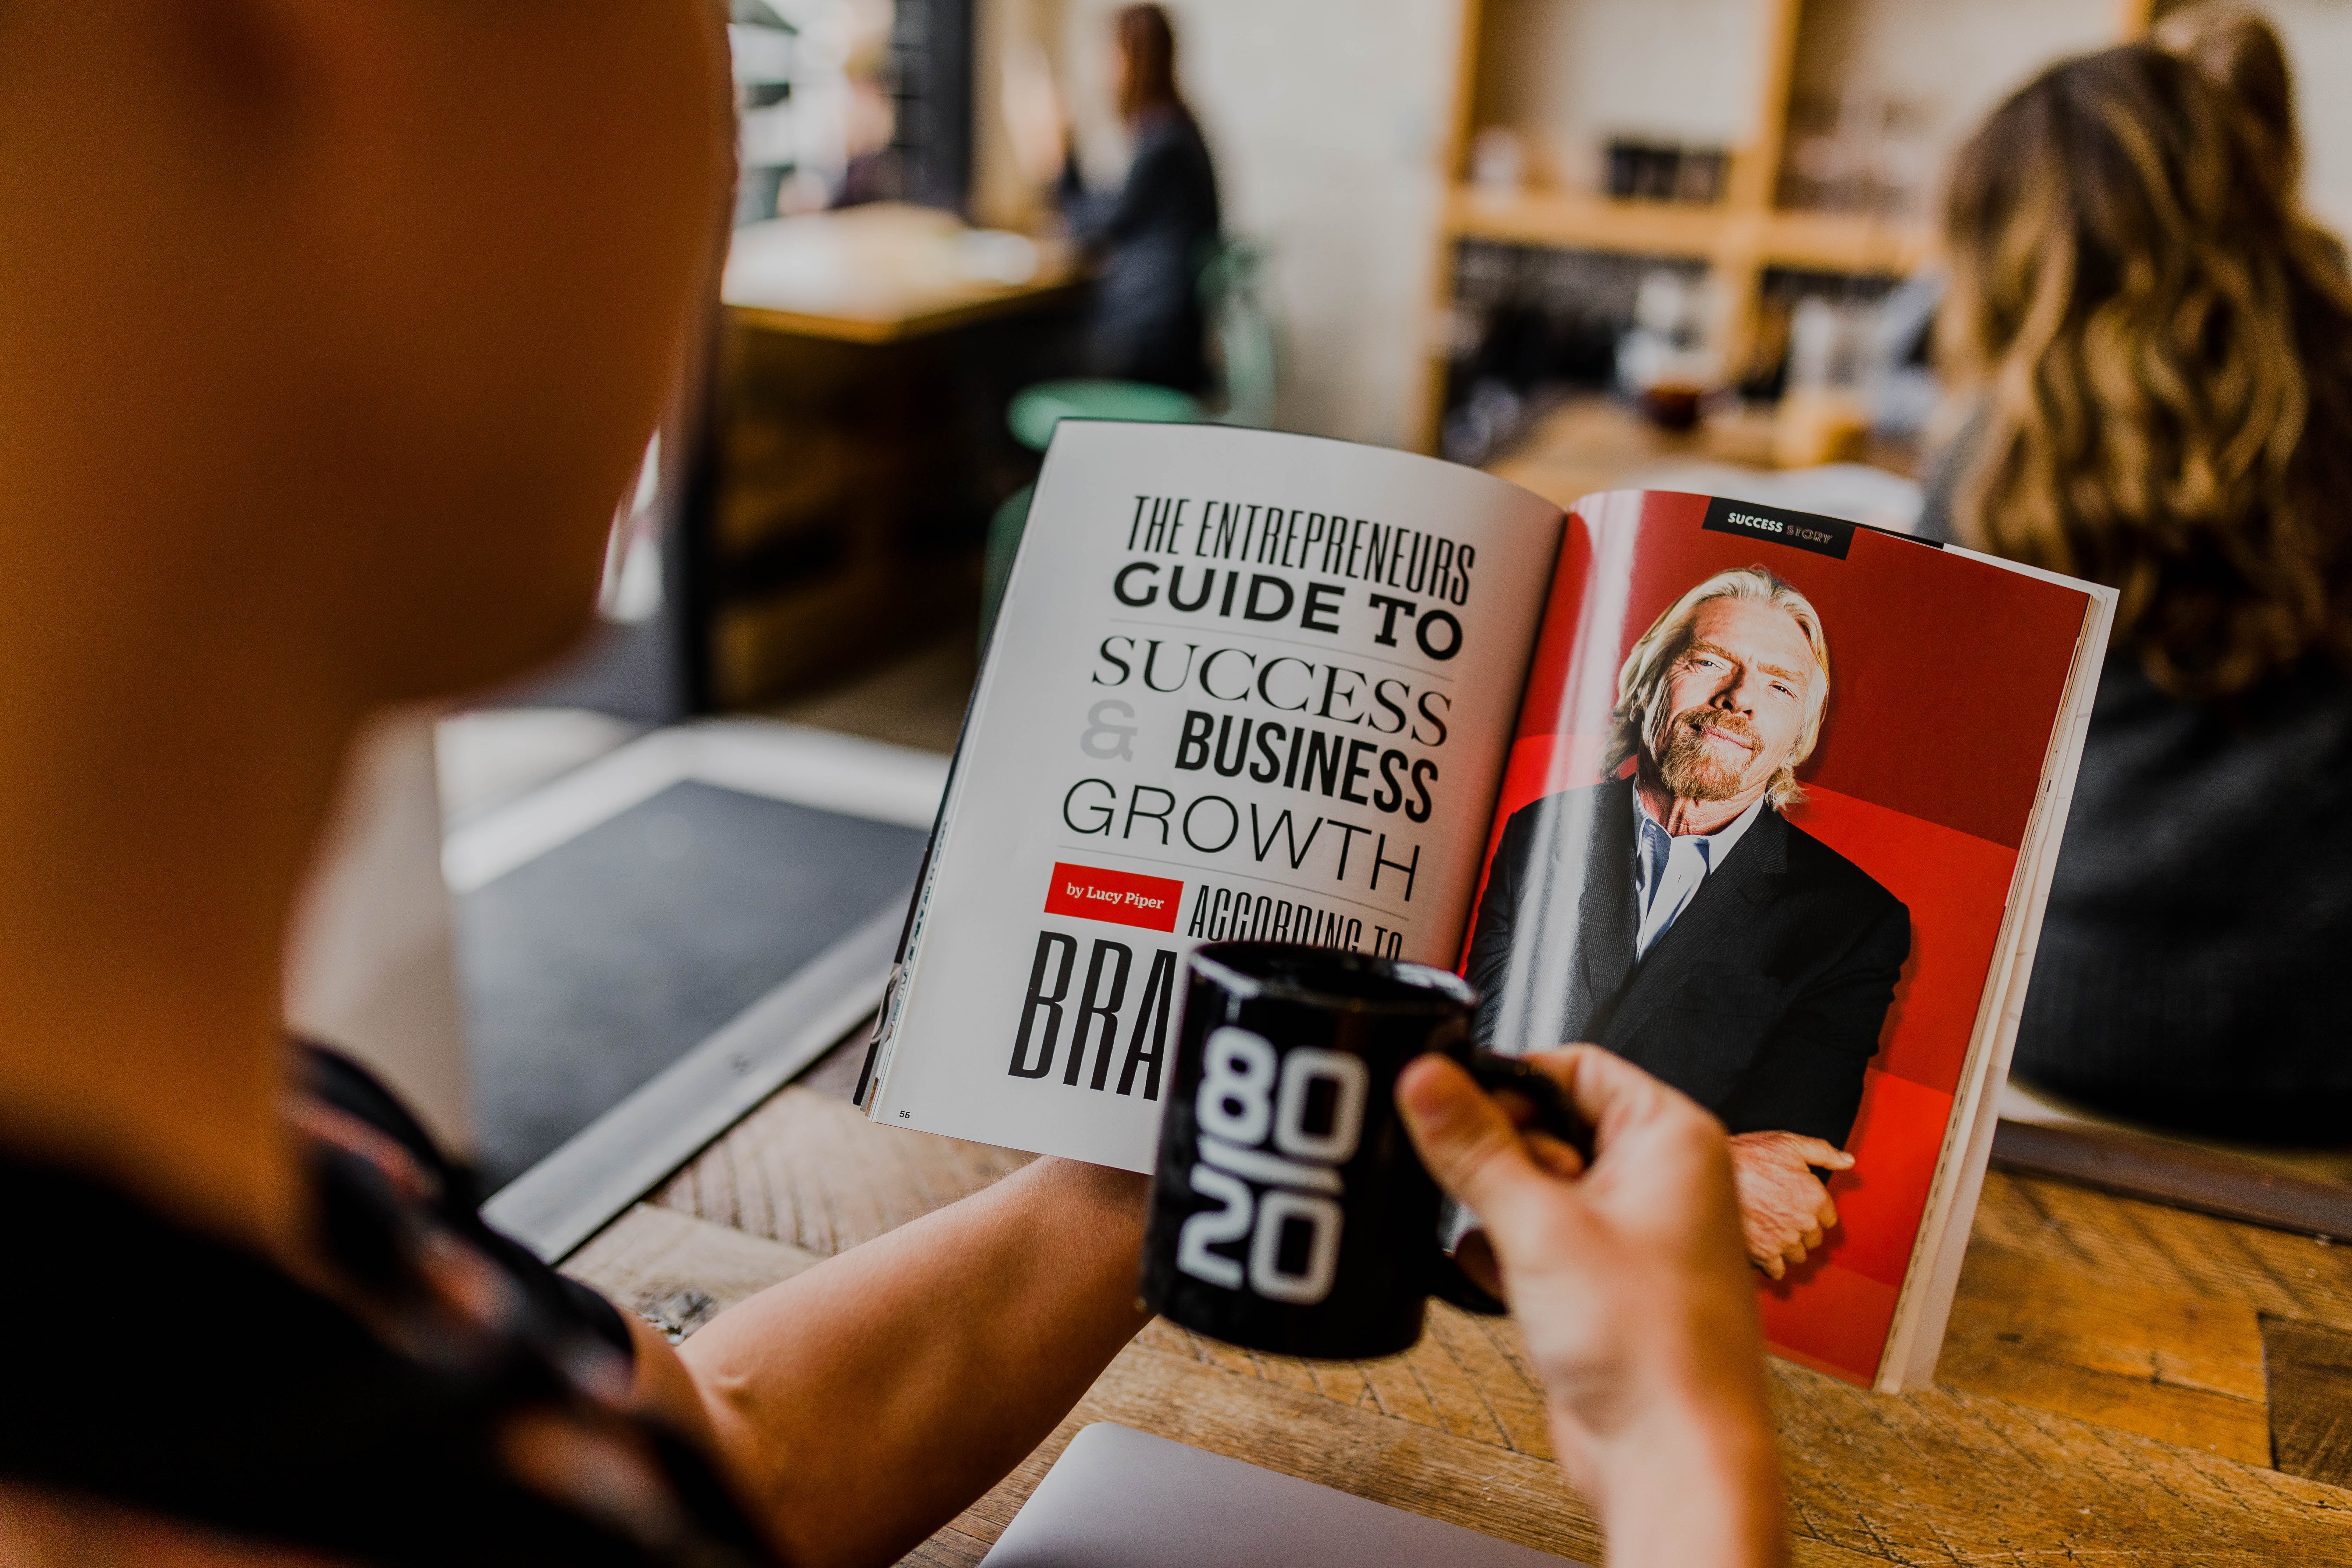 The Top 10 Business Coaches and Mastermind Groups to Help You Grow Your E-Commerce Business